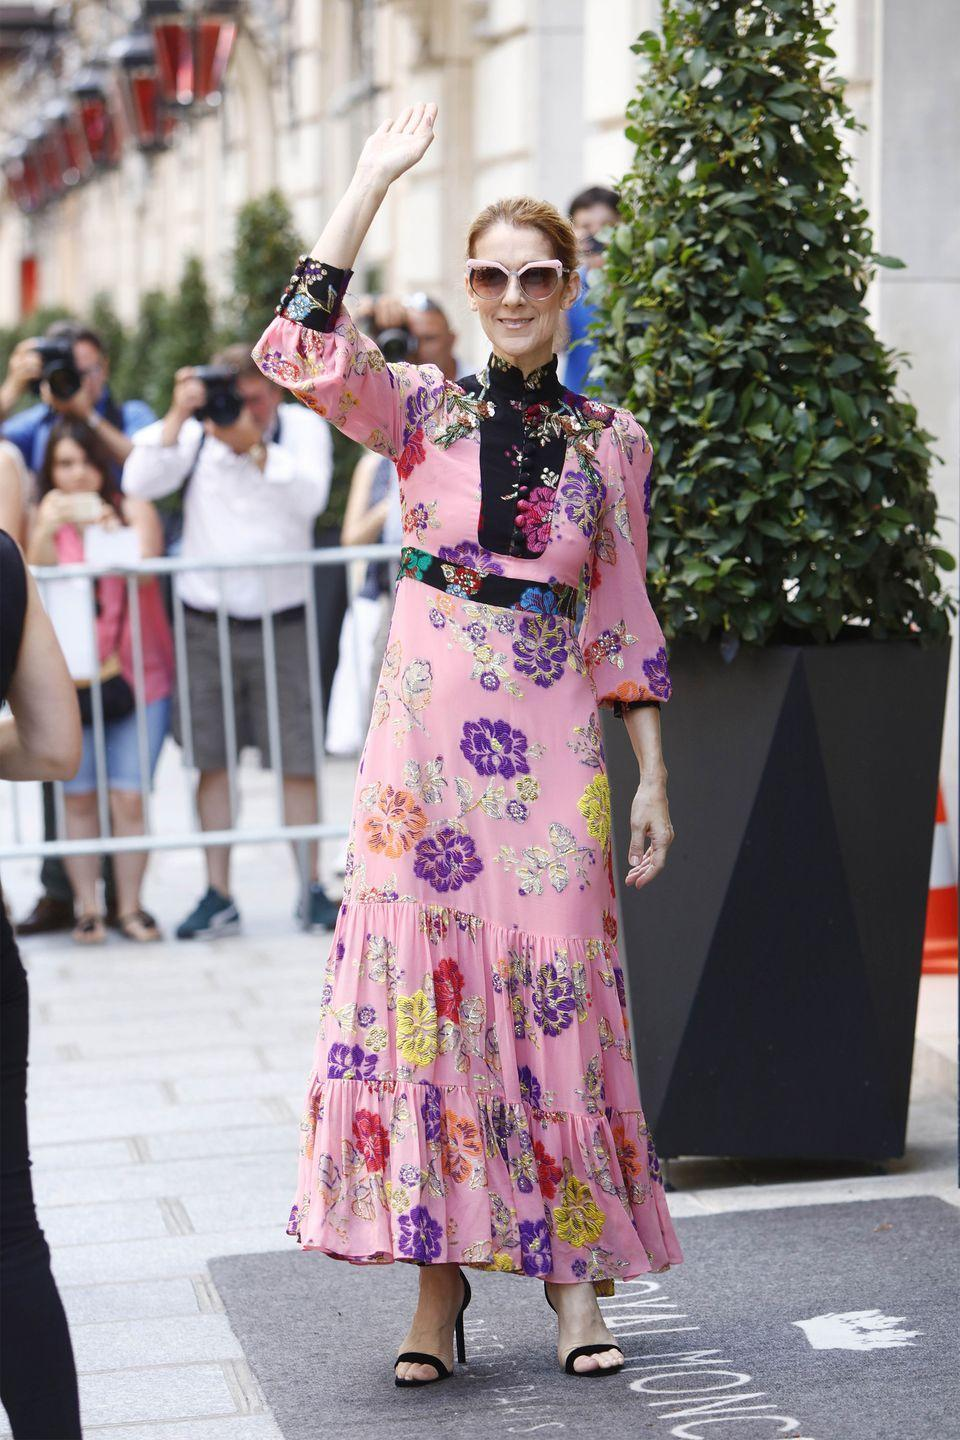 <p>Just one day later, she went for it in another head-to-toe Gucci outfit. This time, a pink floral dress and strappy heeled sandals. <br></p>